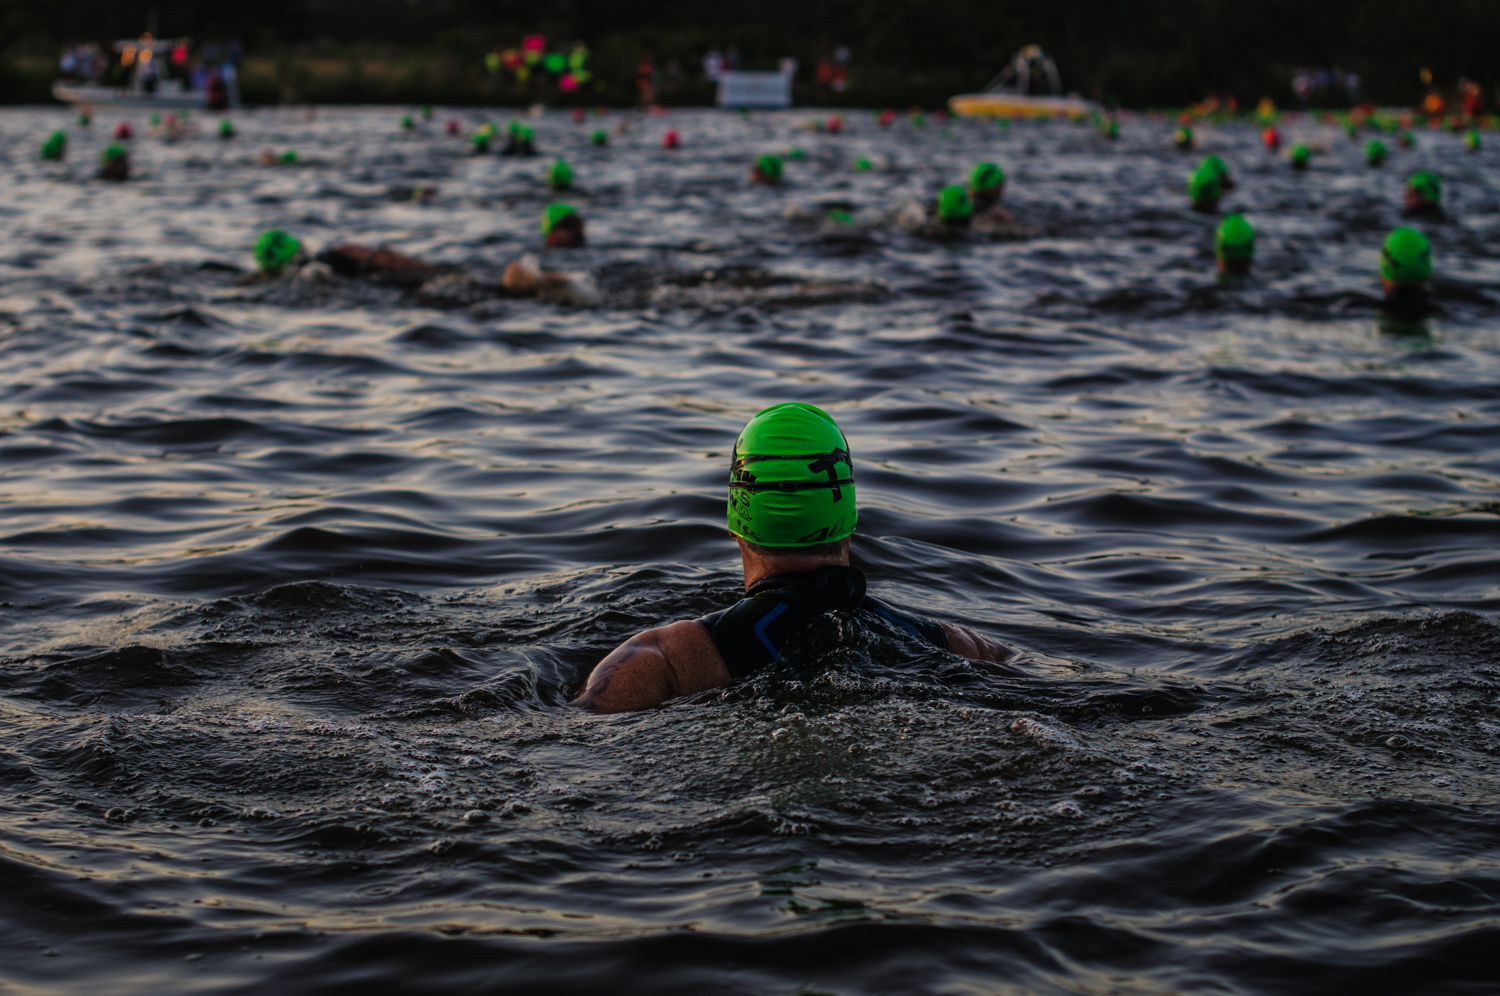 Prior to the start, the athletes warmed up in the wet-suit legal 68 ° water.